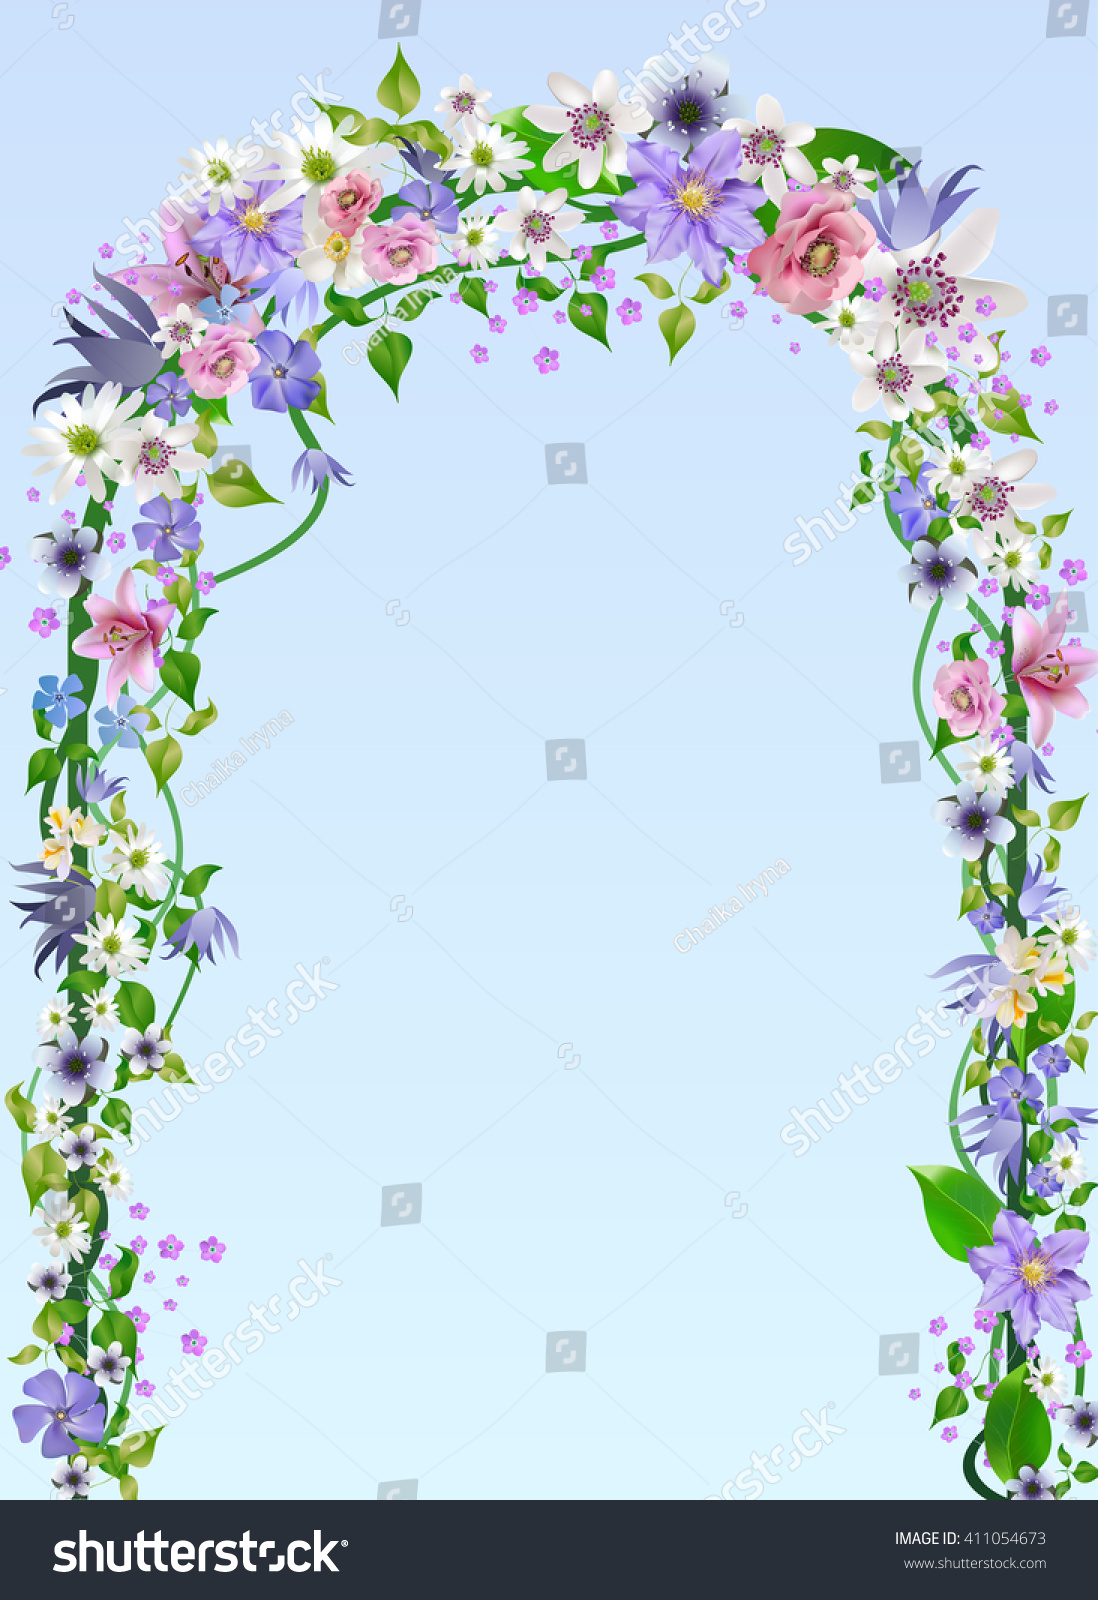 vector wedding arch pergola overgrown with vines and flowers for designanemones primroses